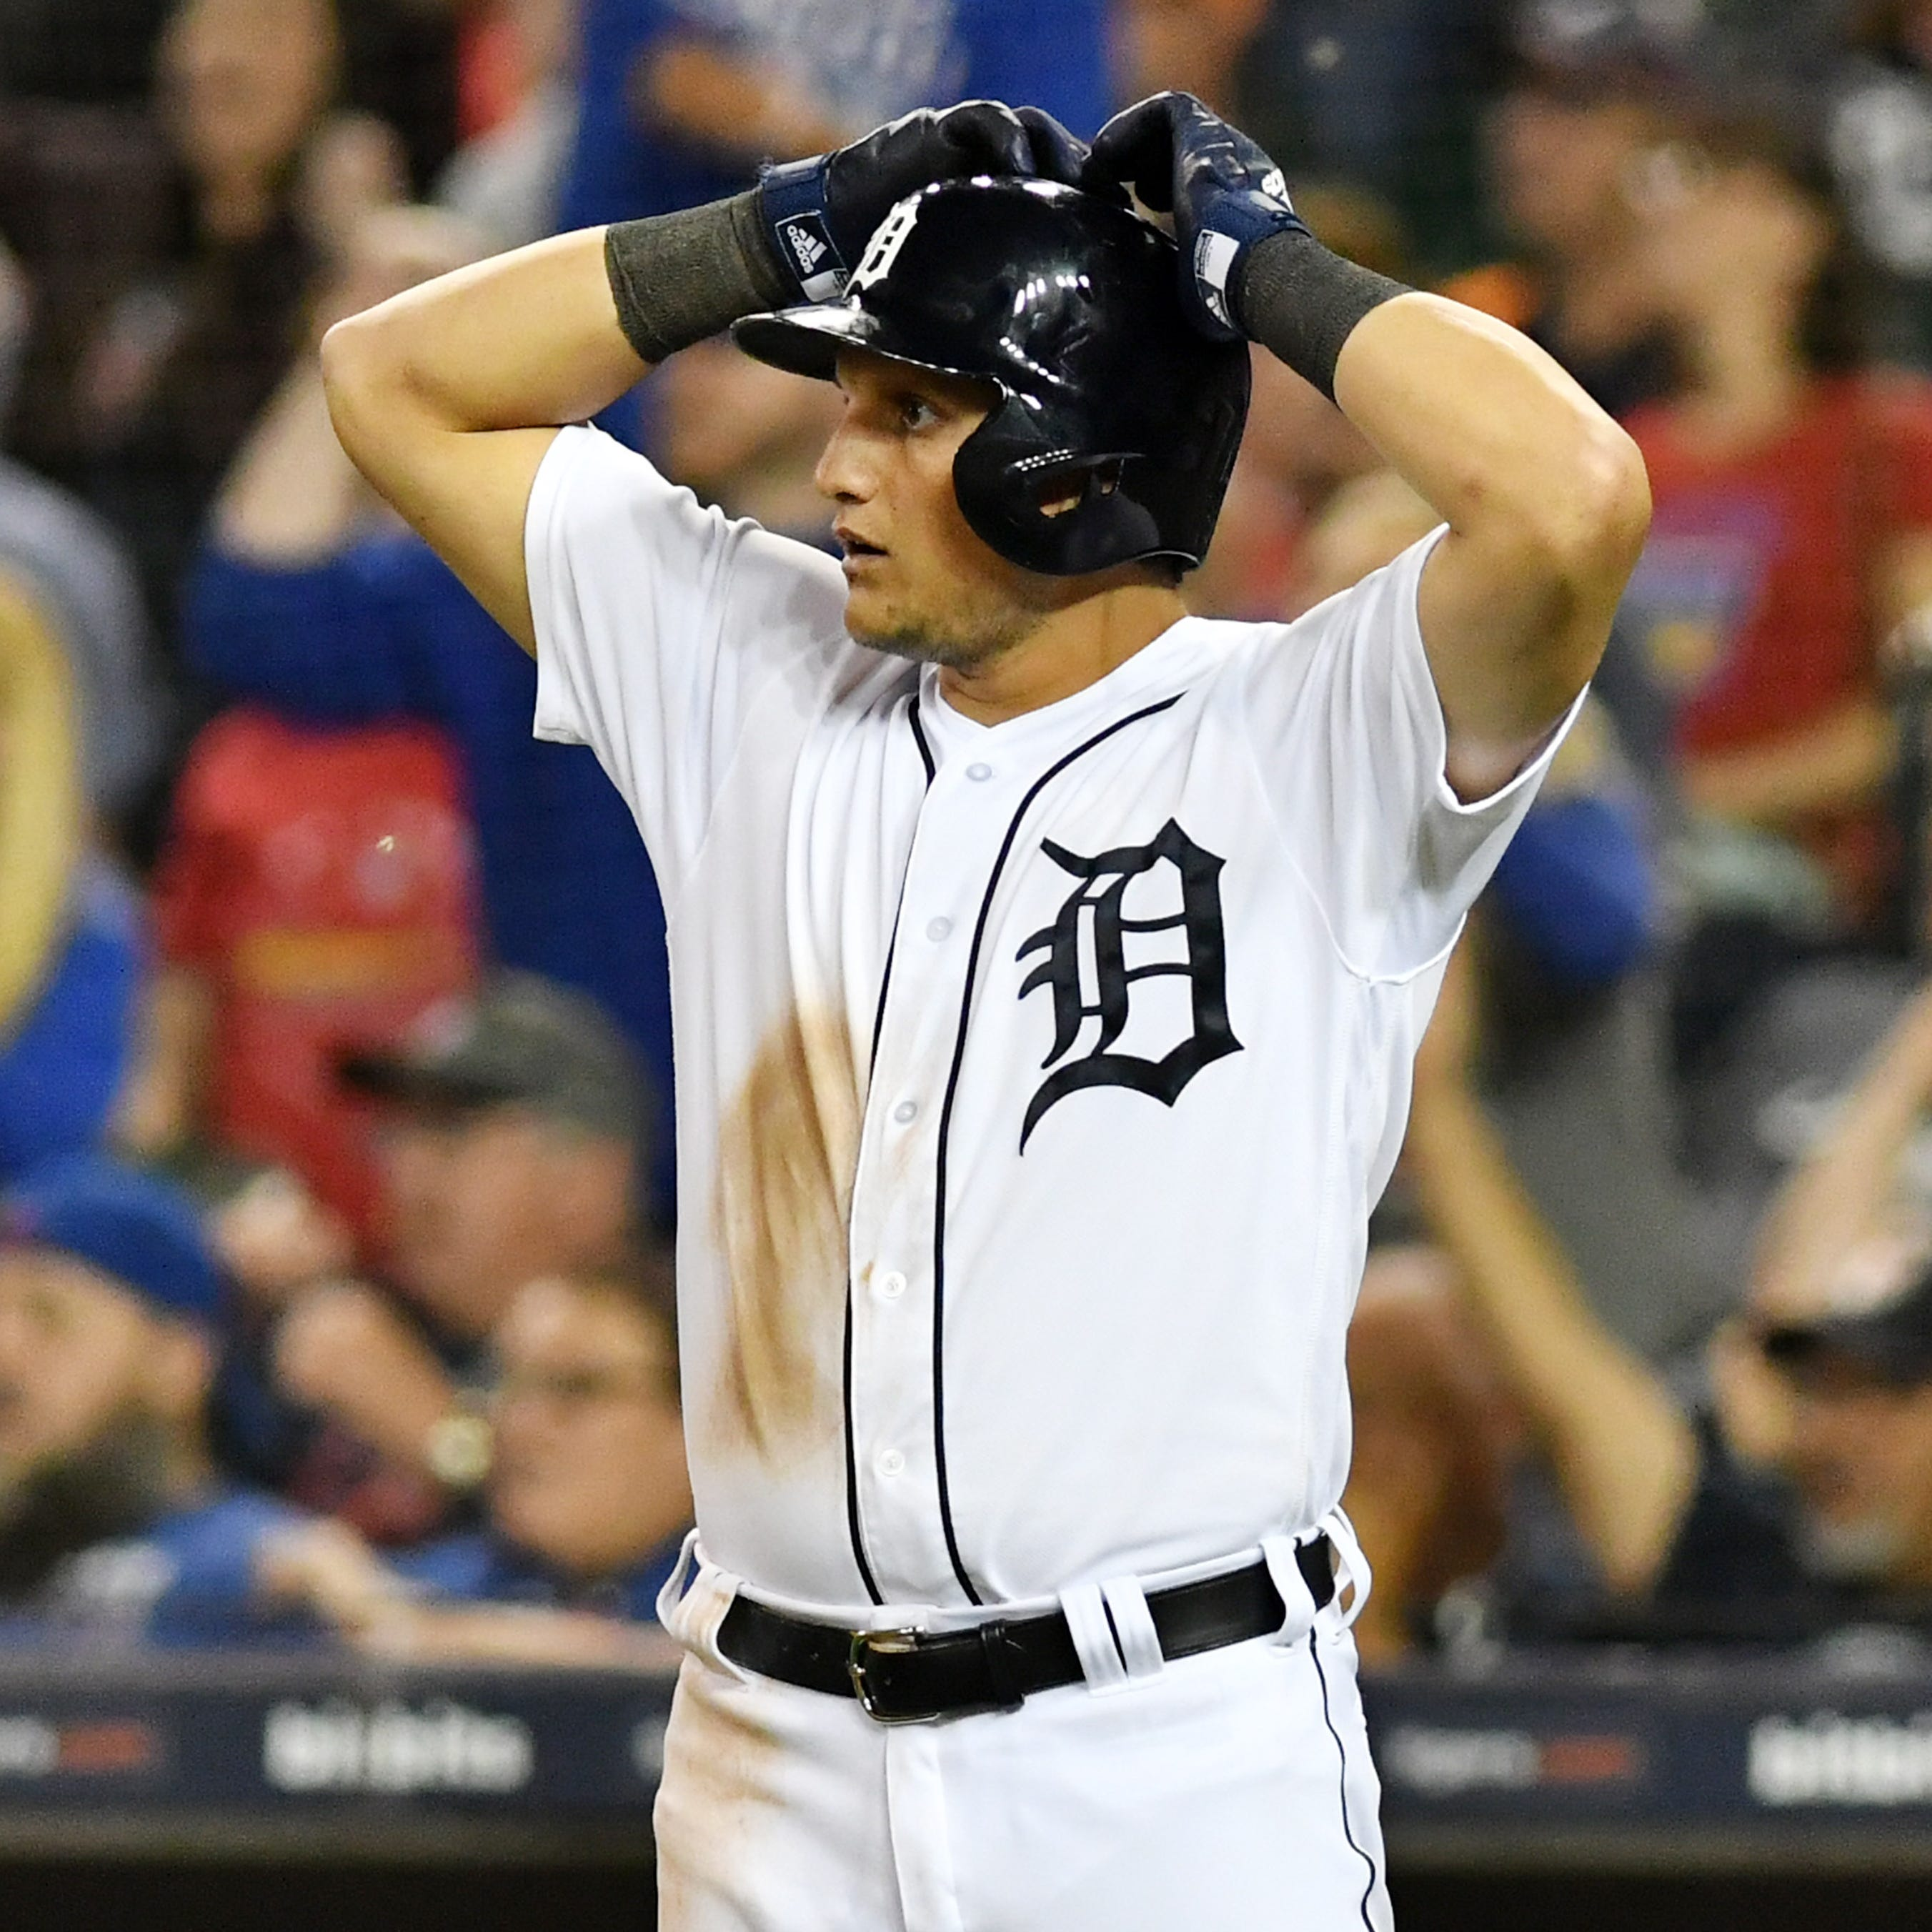 Tigers activate JaCoby Jones, Nick Castellanos out with sprained toe